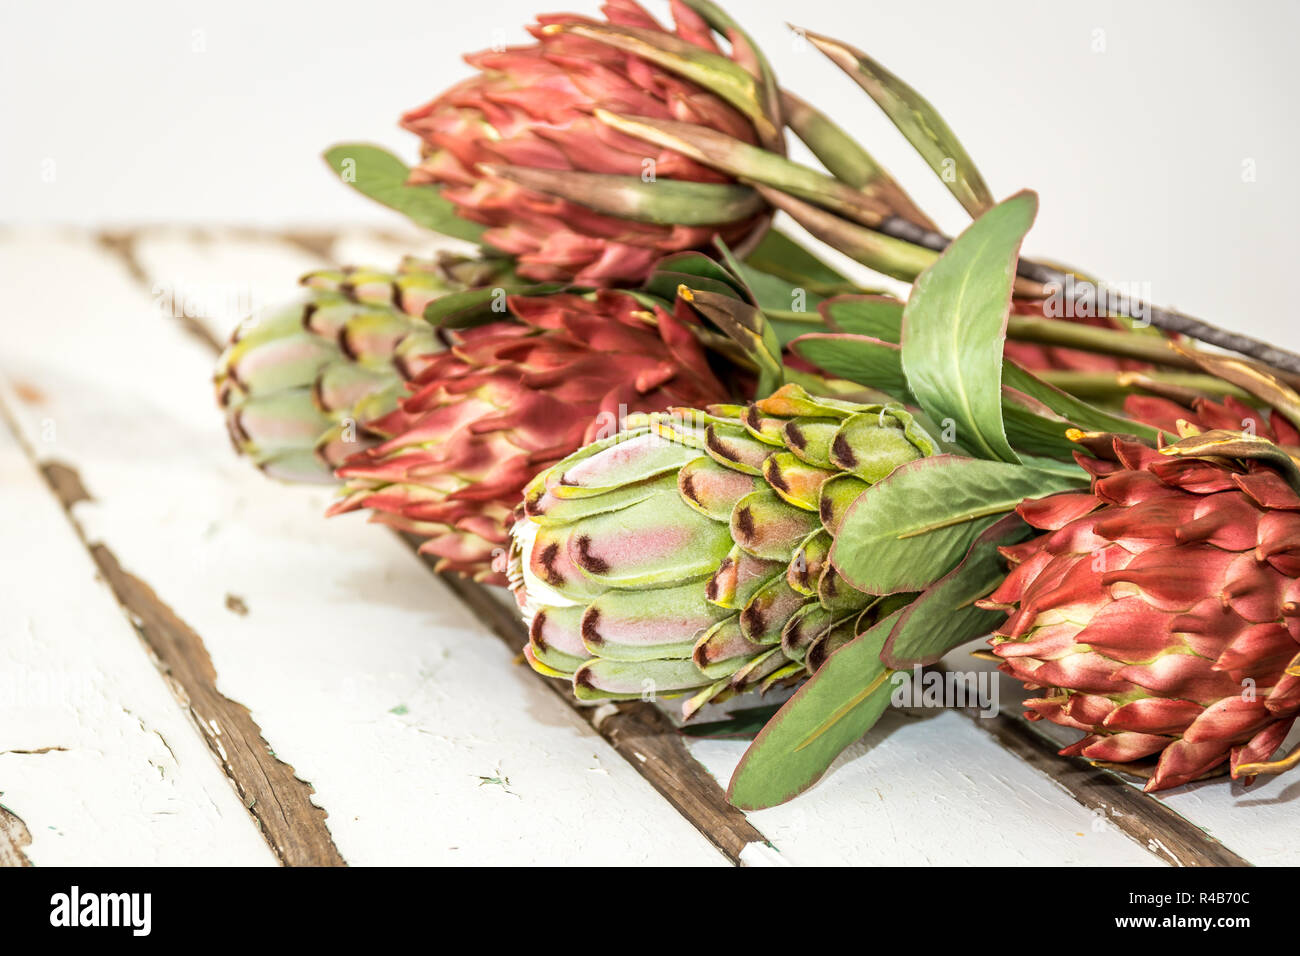 Vintage White Wash Wooden Table With Orange And Green Proteas